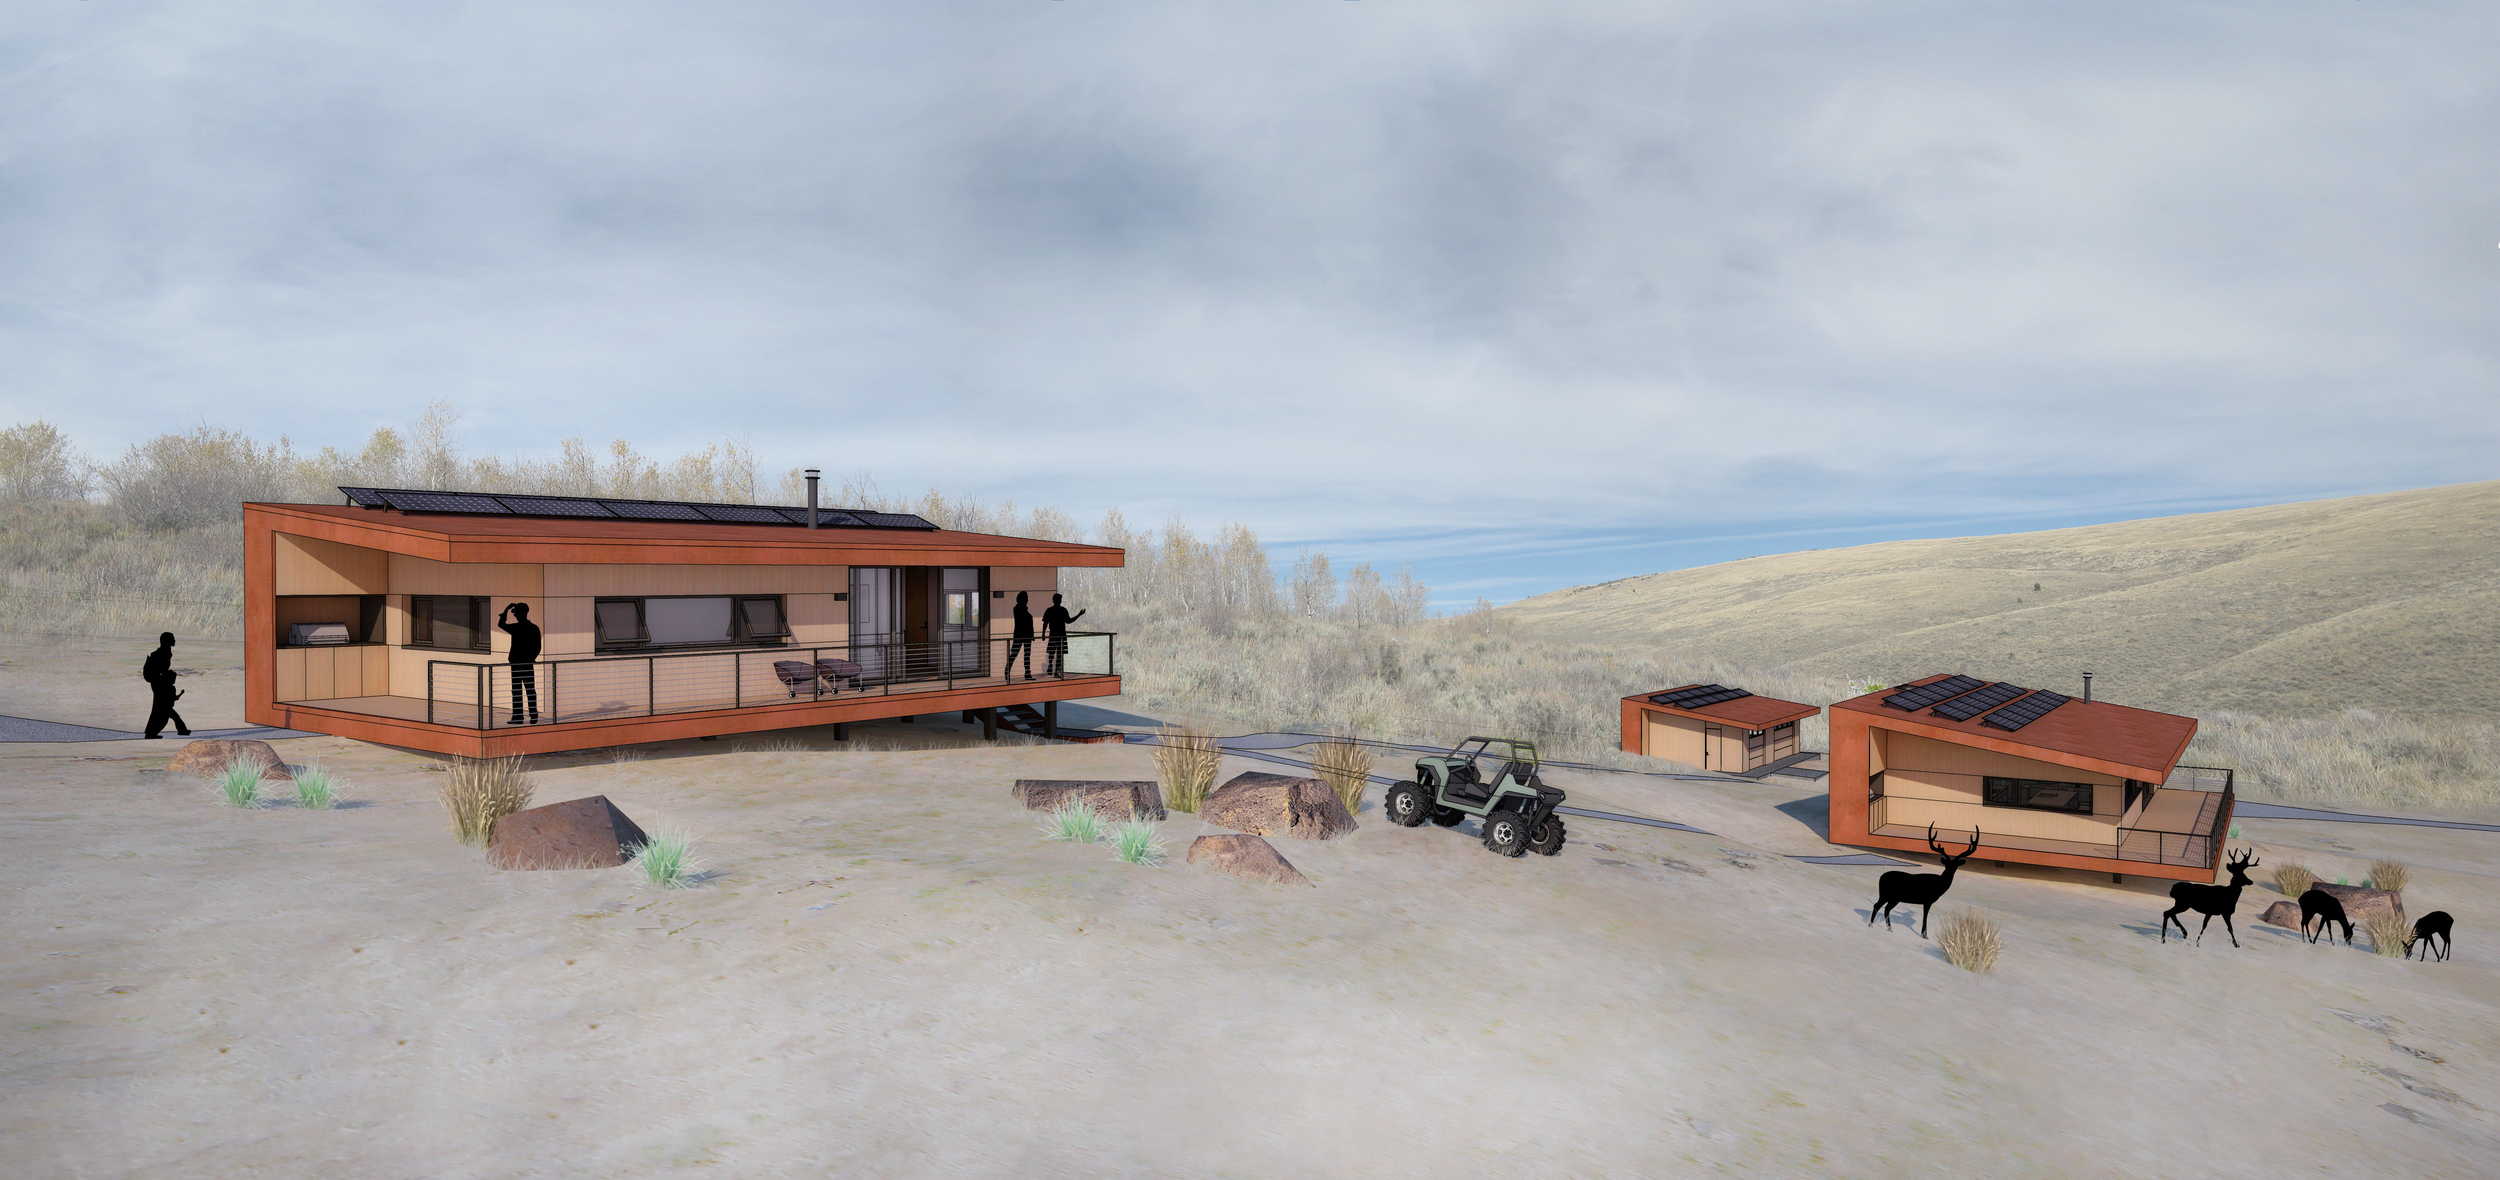 Guest Cabin - Foreground,Main Cabin - Far Right, Barn - Bottom Middle